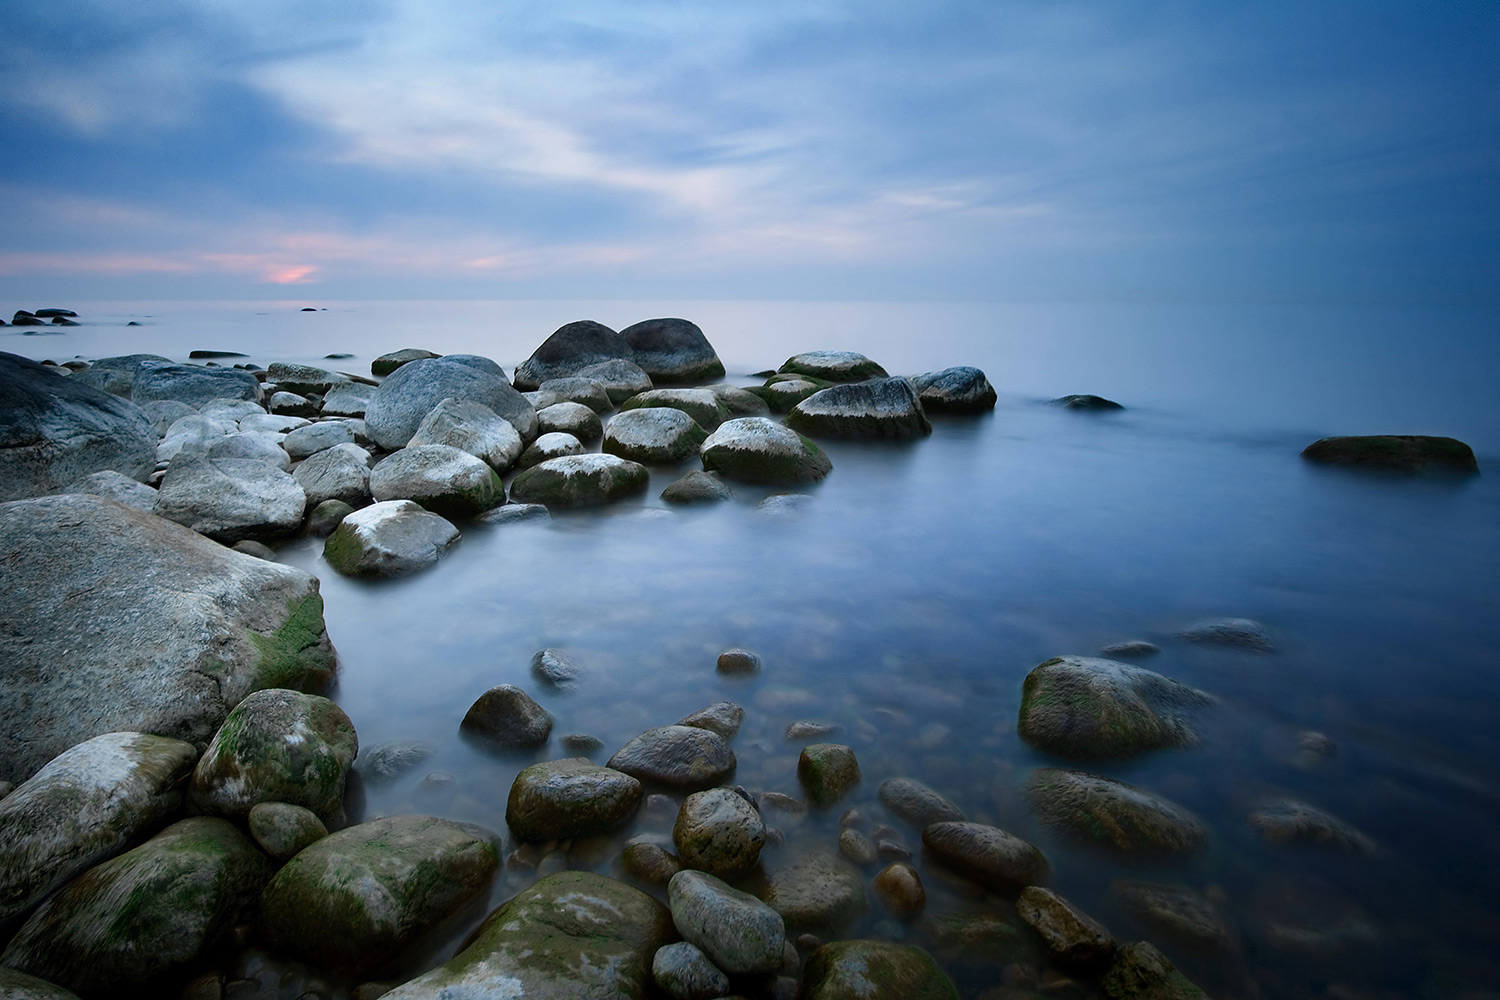 Calming image of rocky shoreline